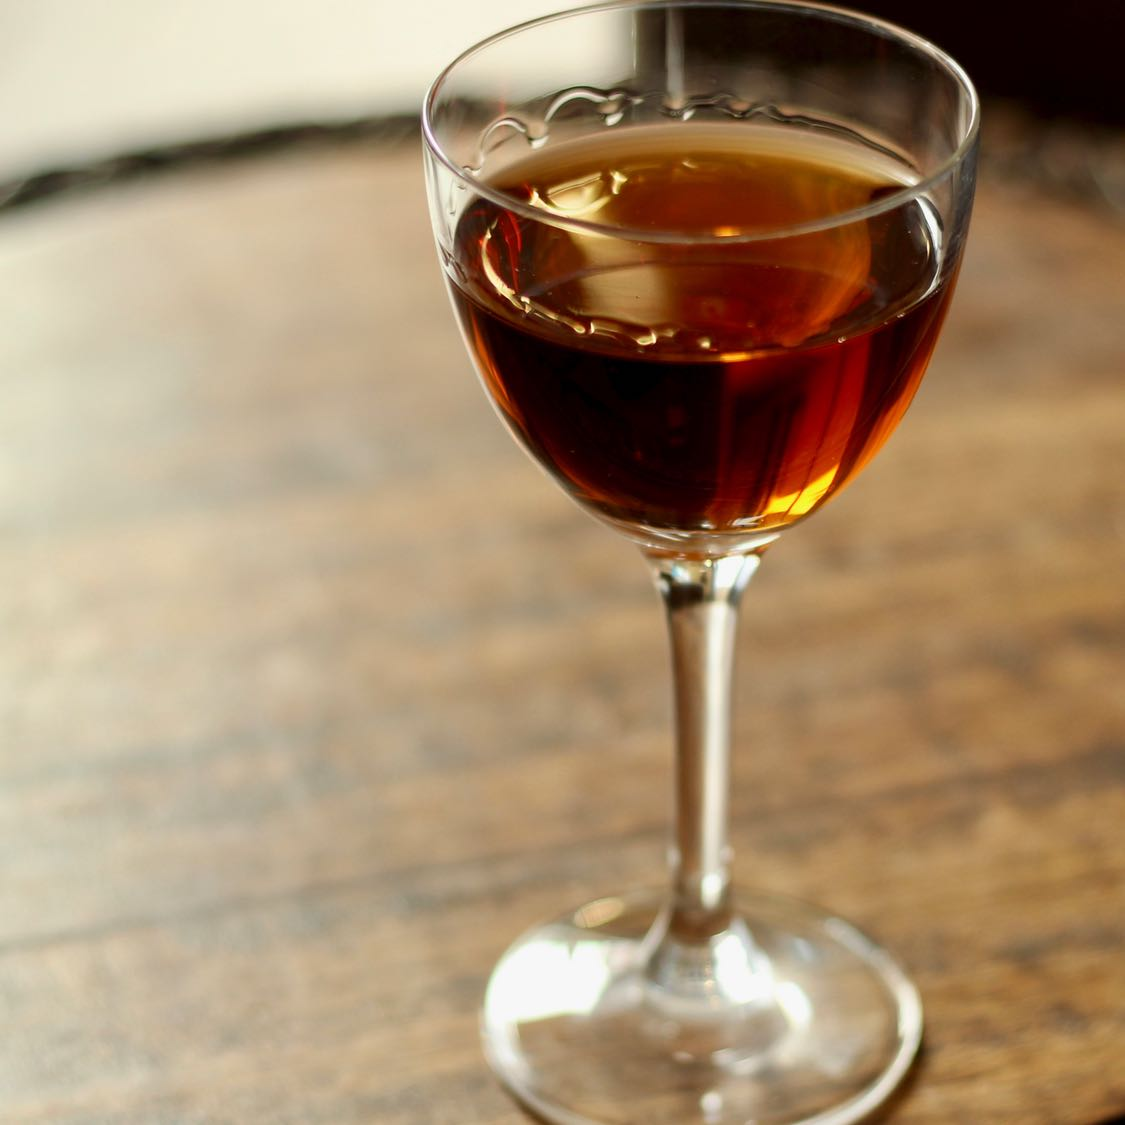 Affinity Cocktail - A Slightly Drier Version of the Manhattan